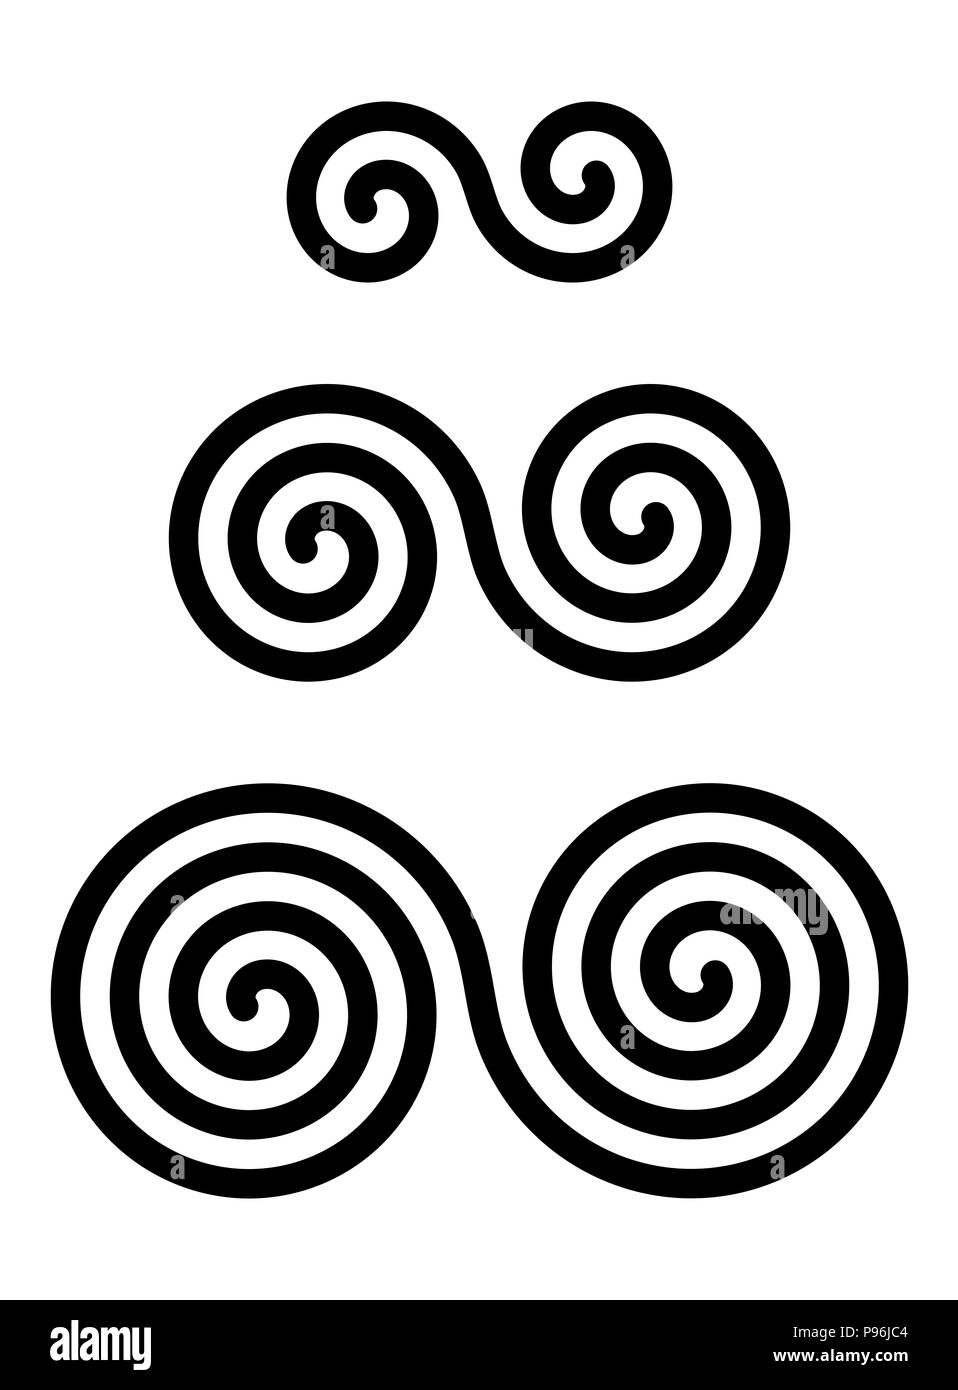 Three interlocked double spirals over white. Combined spirals with two, three and four turns. Motifs of twisted and connected spirals. - Stock Image